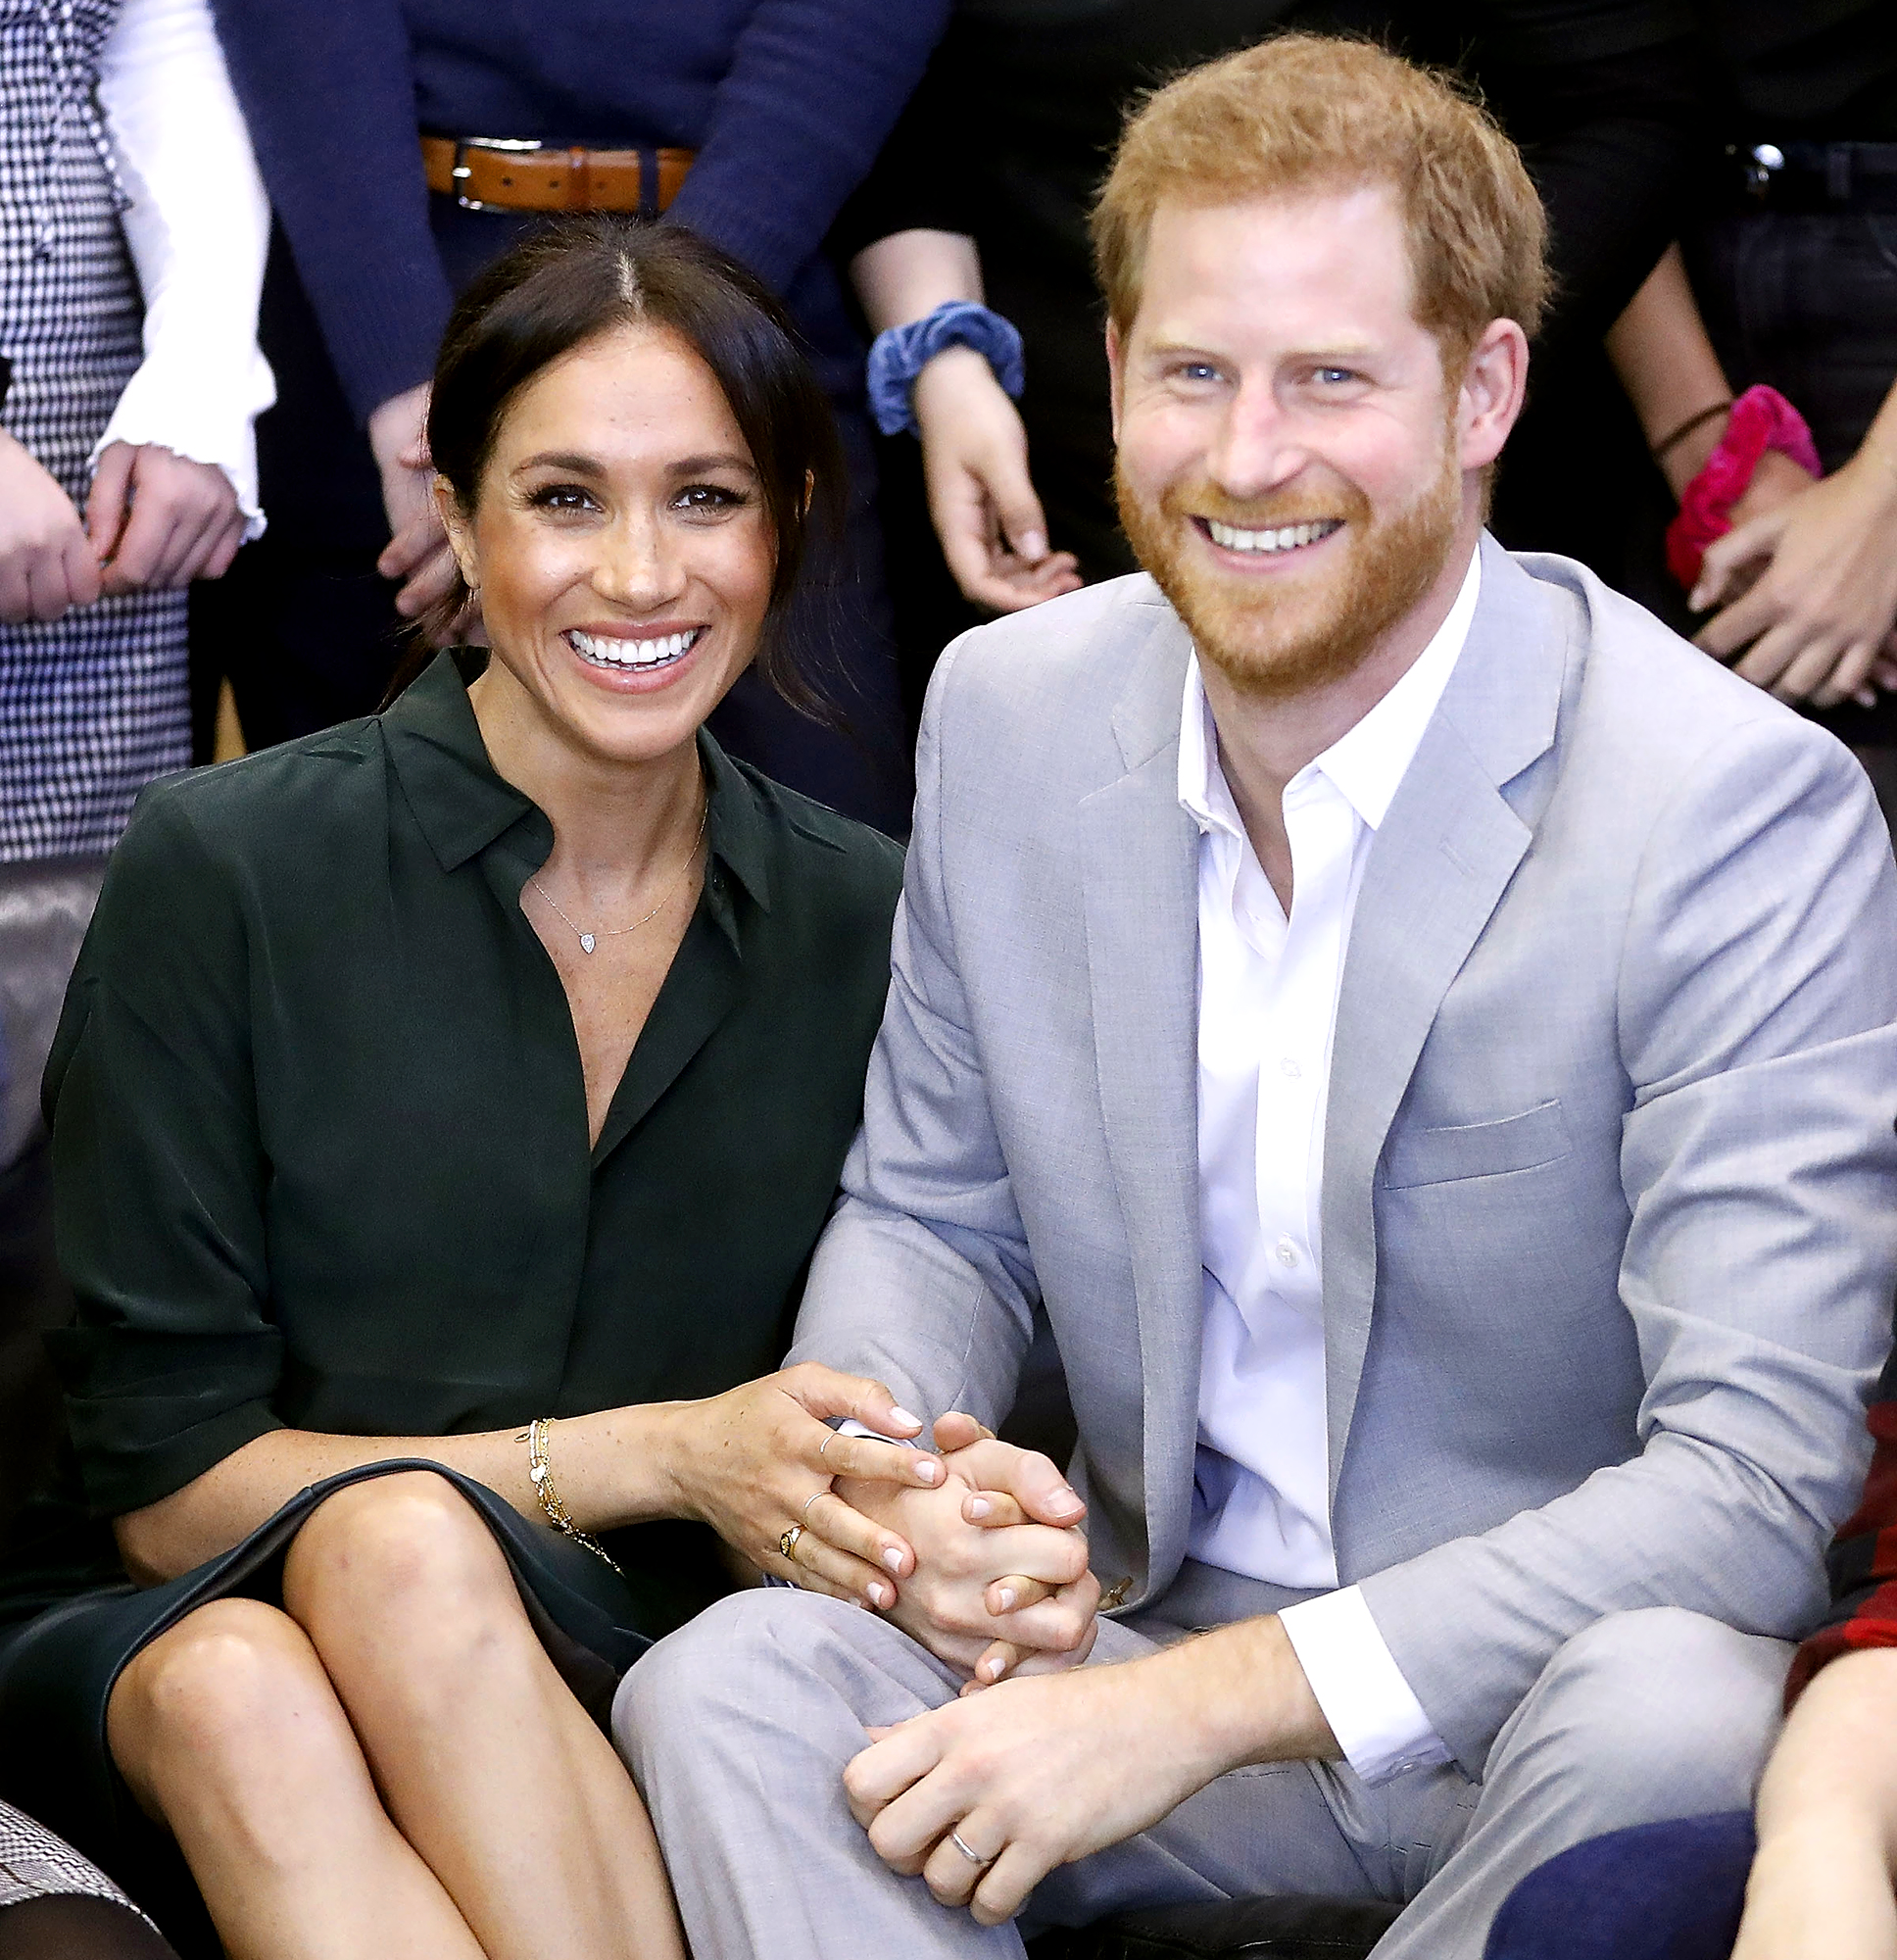 prince-harry-duchess-meghan - Meghan, Duchess of Sussex and Prince Harry, Duke of Sussex make an official visit to the Joff Youth Centre in Peacehaven, Sussex on October 3, 2018 in Peacehaven, United Kingdom.